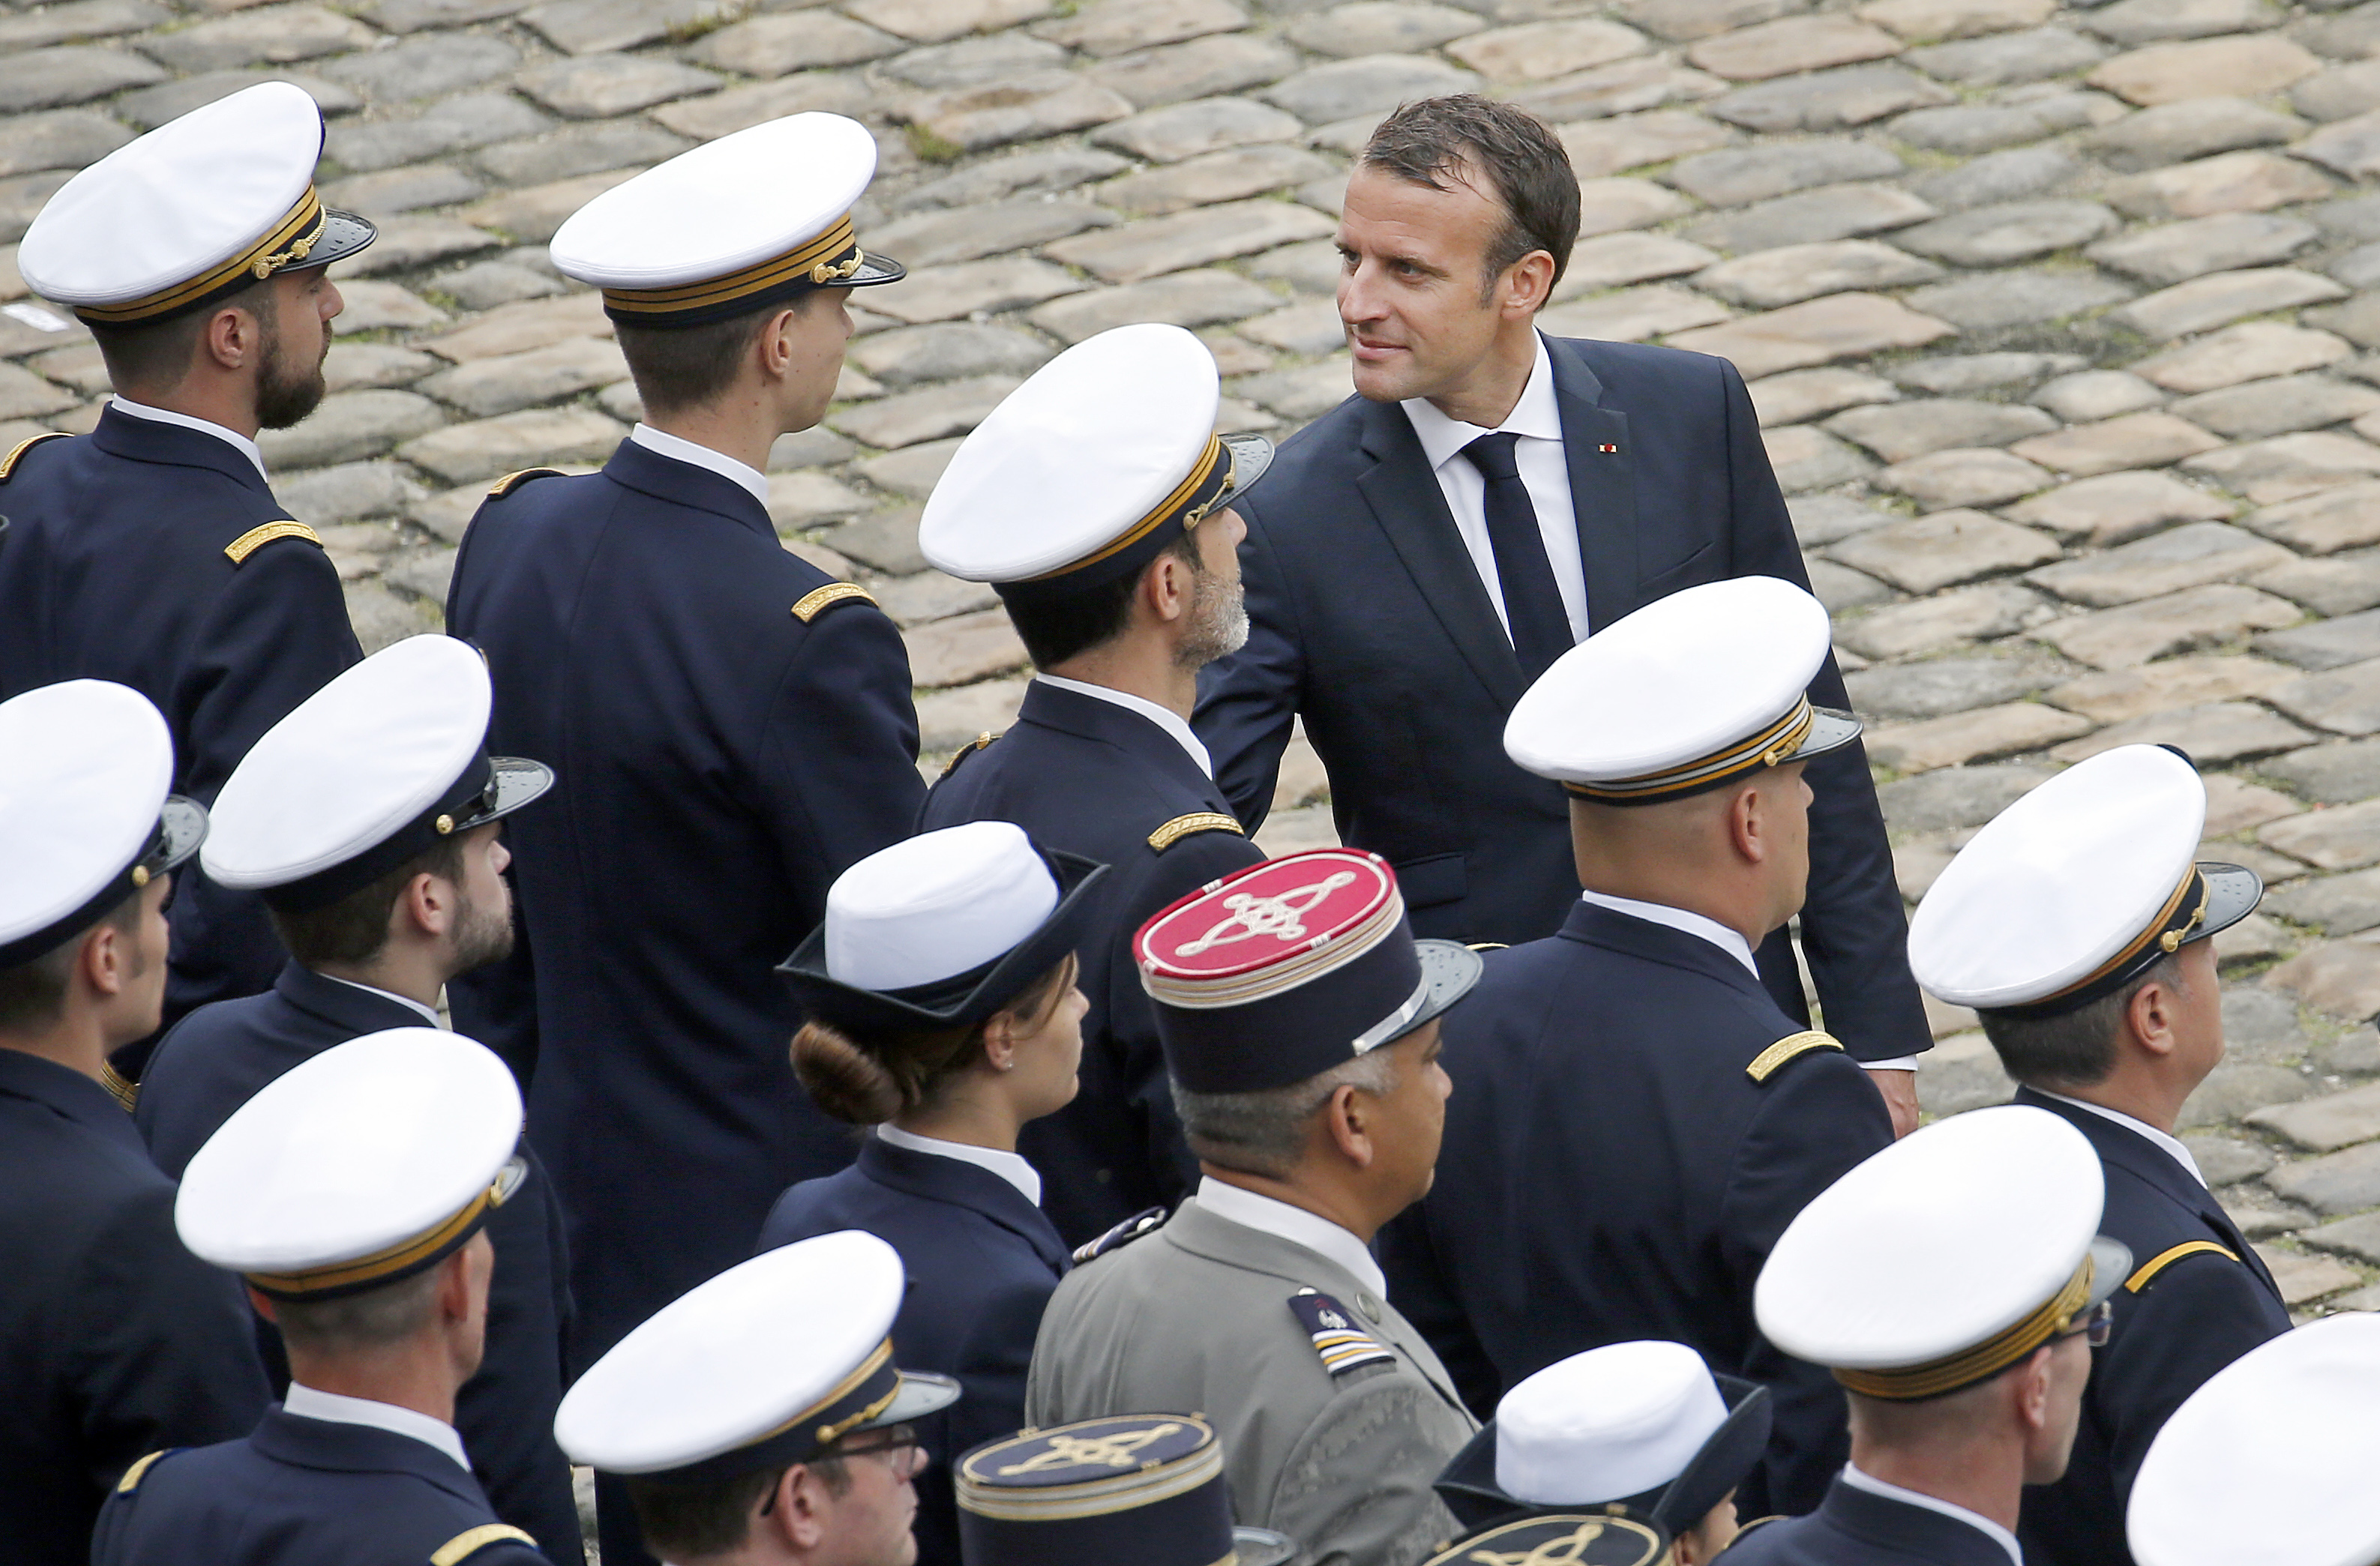 French President Emmanuel Macron attends the  prise d'armes  military ceremony on June 11, 2018 in Paris, France.